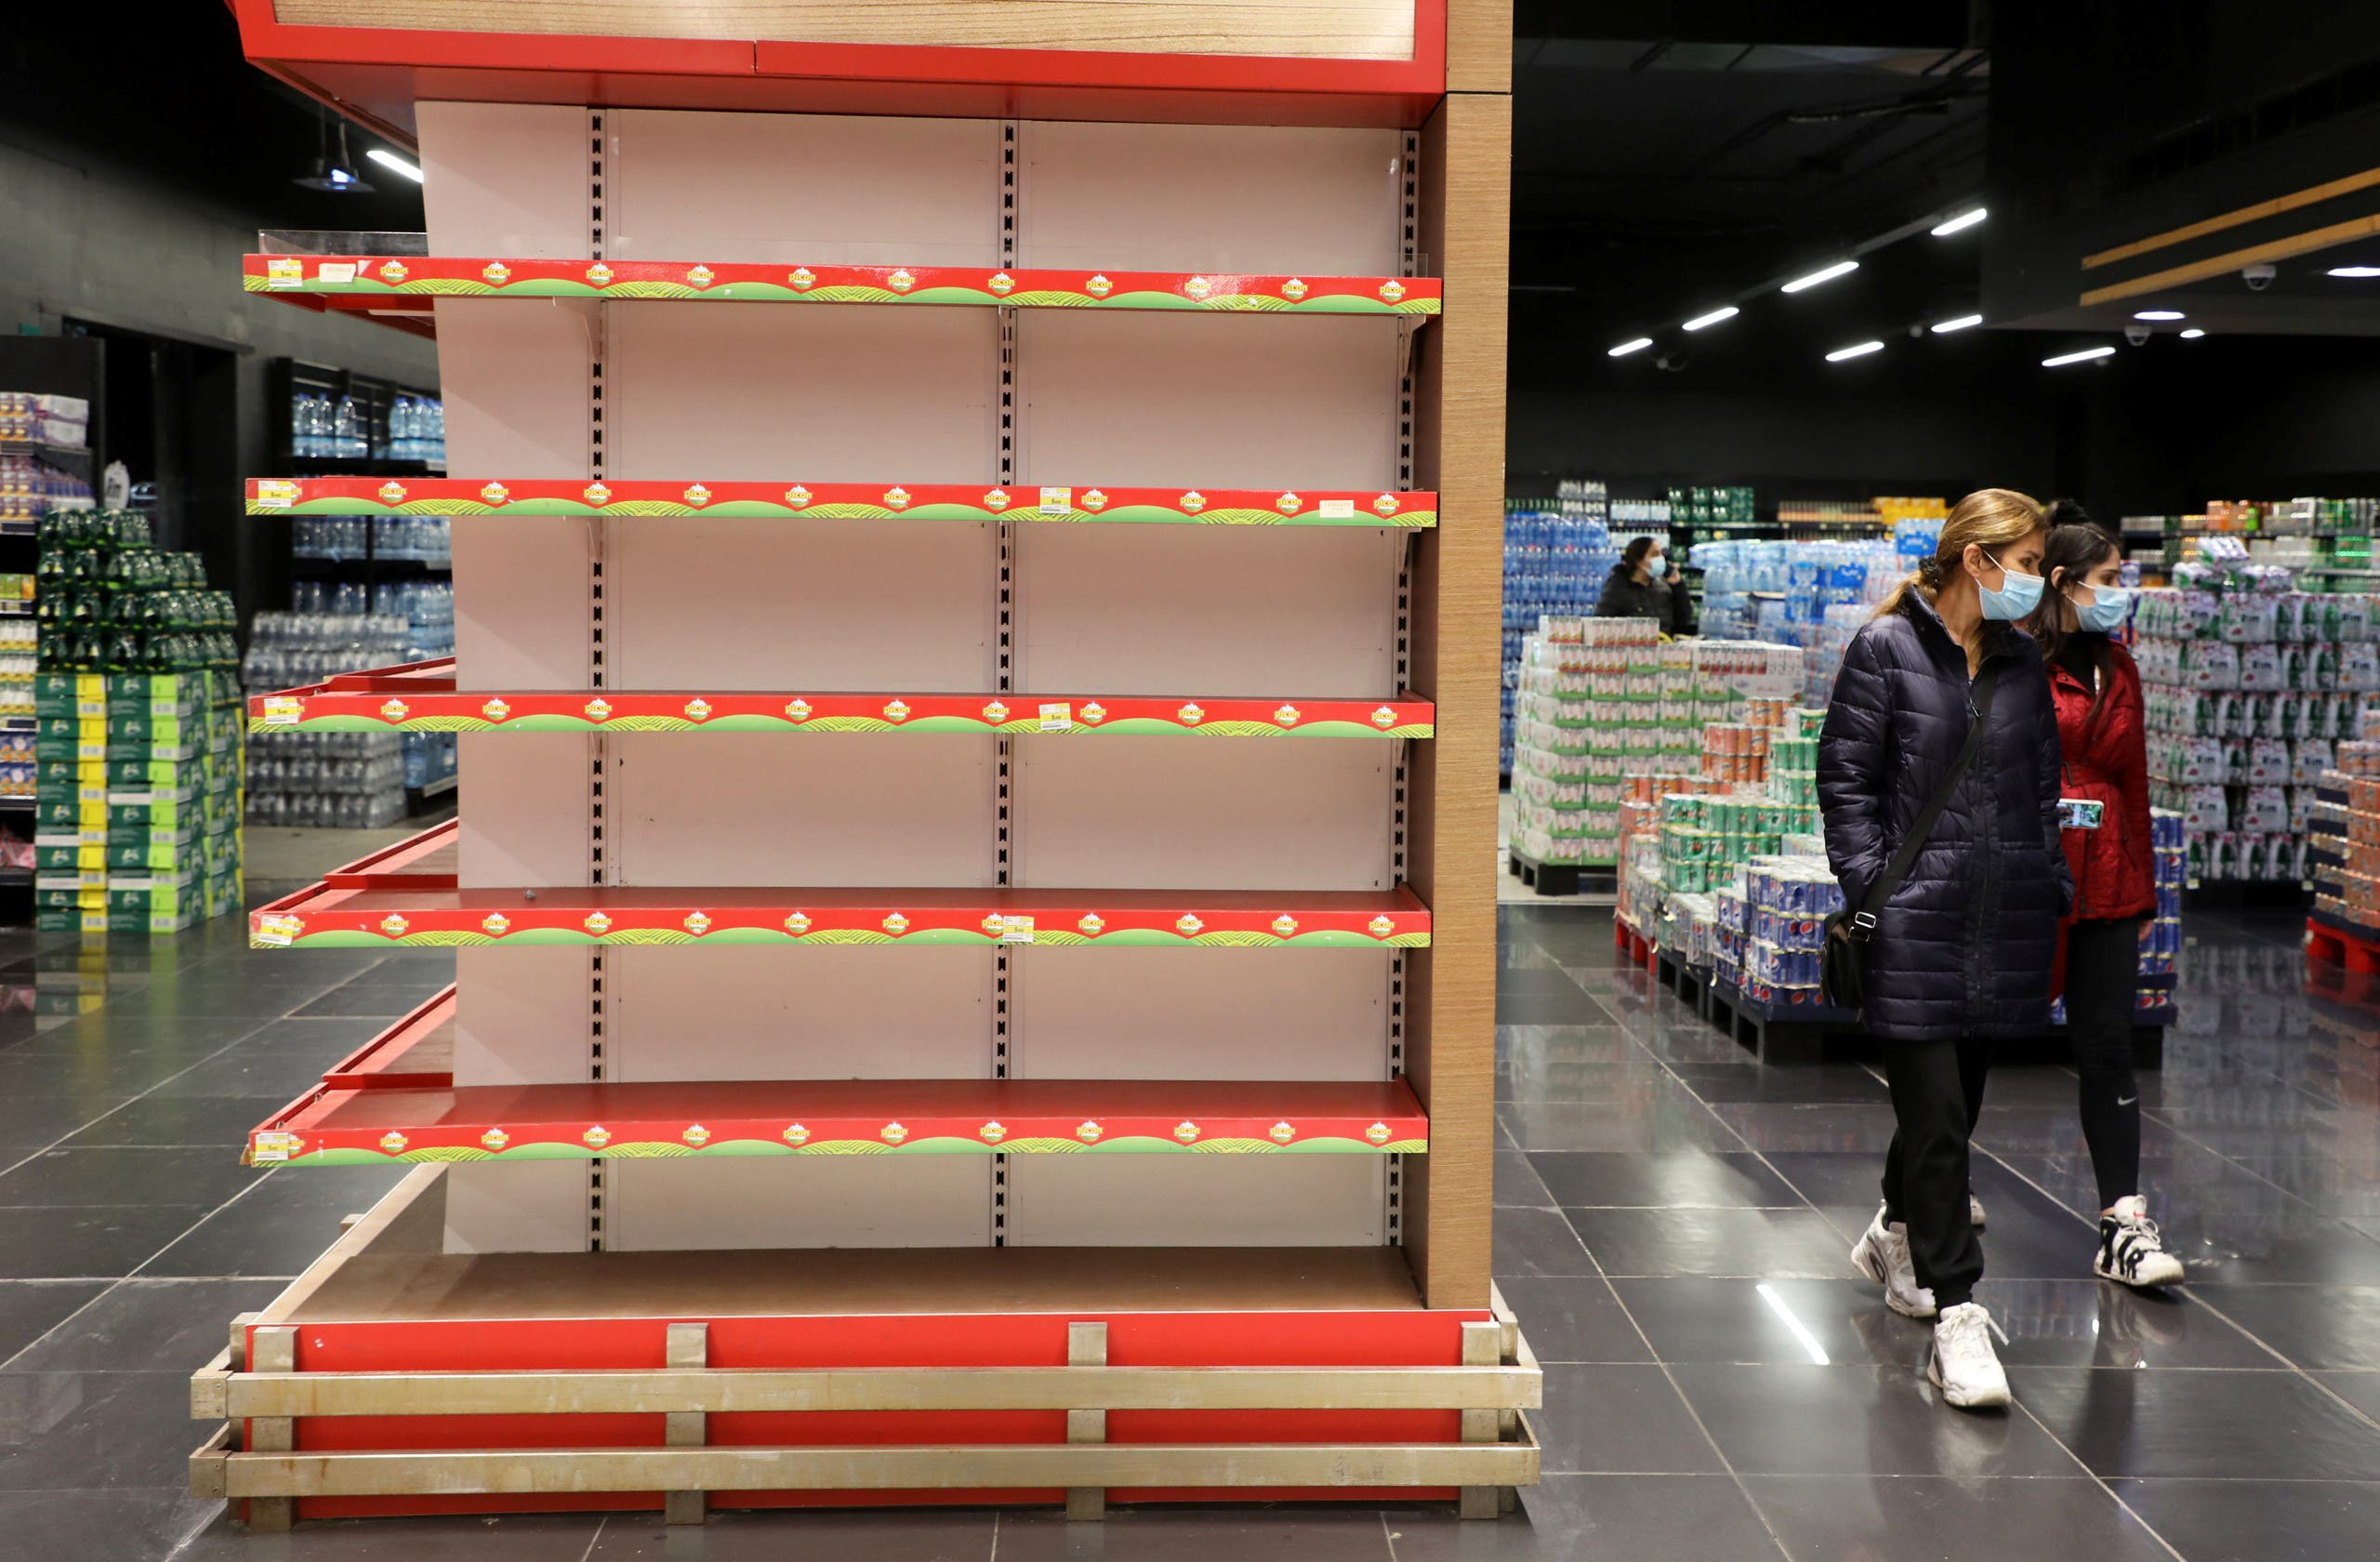 Shoppers walk past an empty shelf at a supermarket in Beirut, Lebanon March 16, 2021. Picture taken March 16, 2021. (File photo: Reuters)